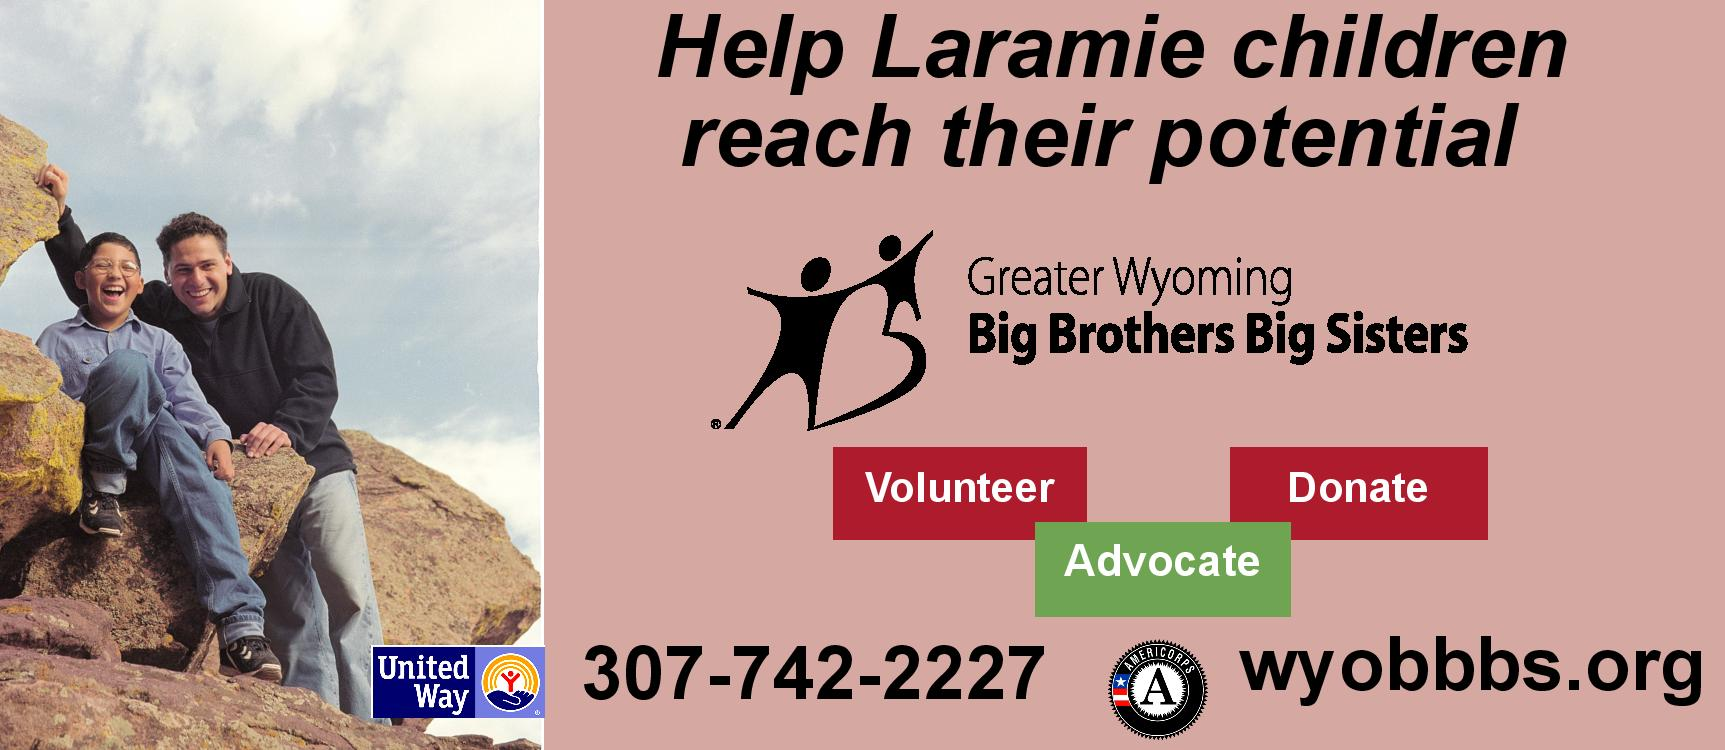 Help Laramie children reach their potential.  Greater Wyoming Big Brothers Big Sisters.  Go to wyobbbs.org or call 307-742-2227.